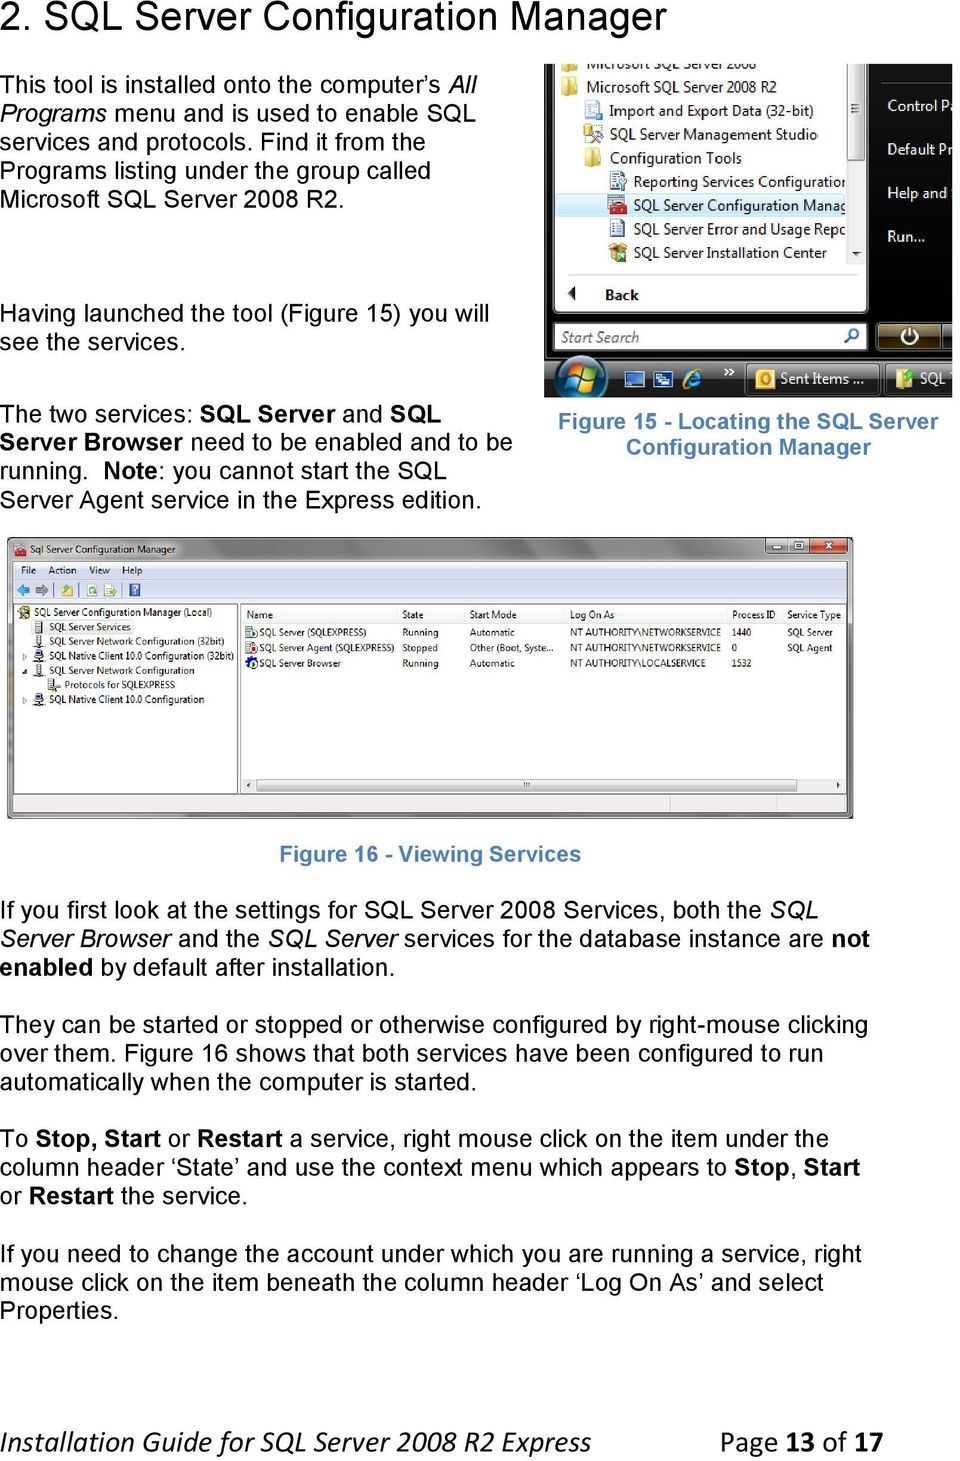 The two services: SQL Server and SQL Server Browser need to be enabled and to be running. Note: you cannot start the SQL Server Agent service in the Express edition.